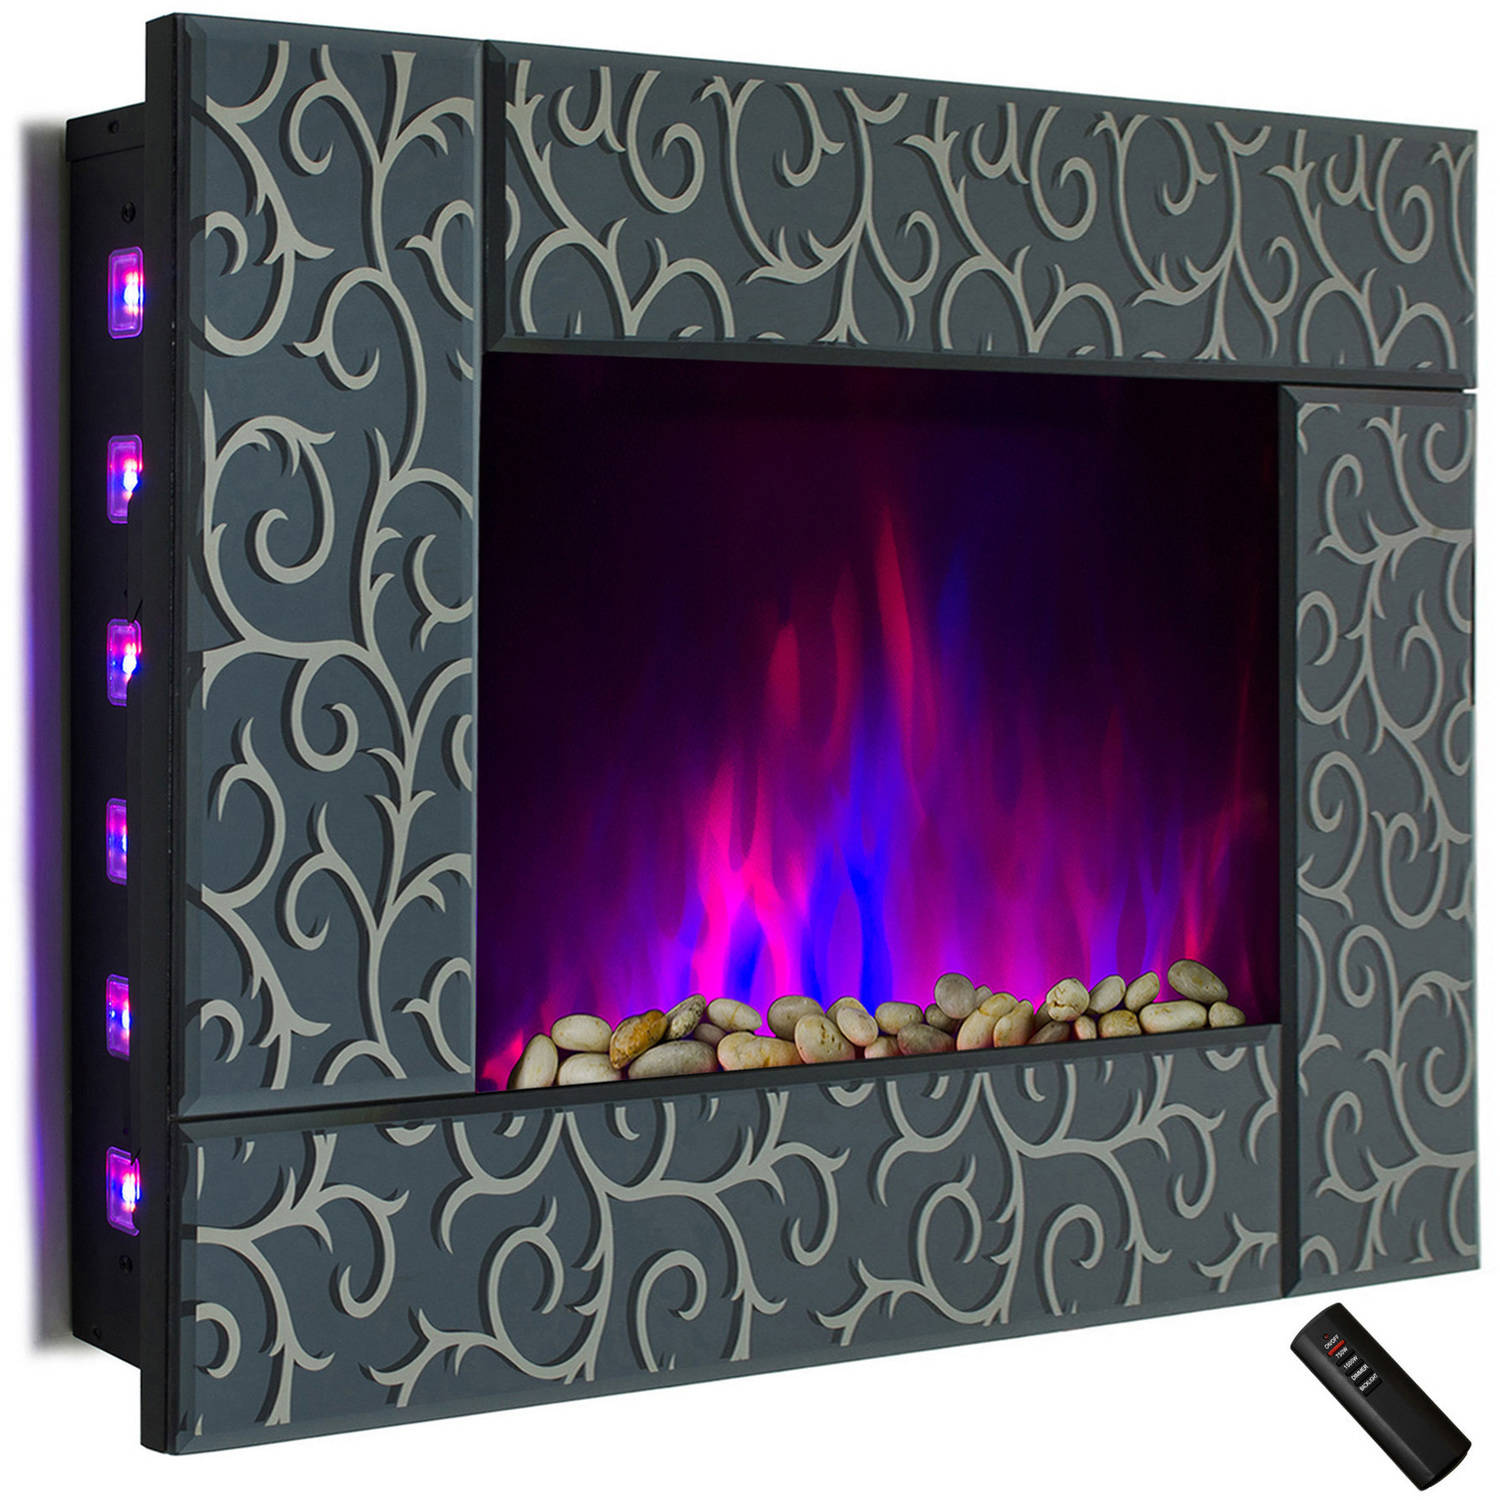 "AKDY FP0051 36"" 1500W Wall Mount Electric Fireplace Heater with Pebbles, Logs and Remote Control, Multicolor"